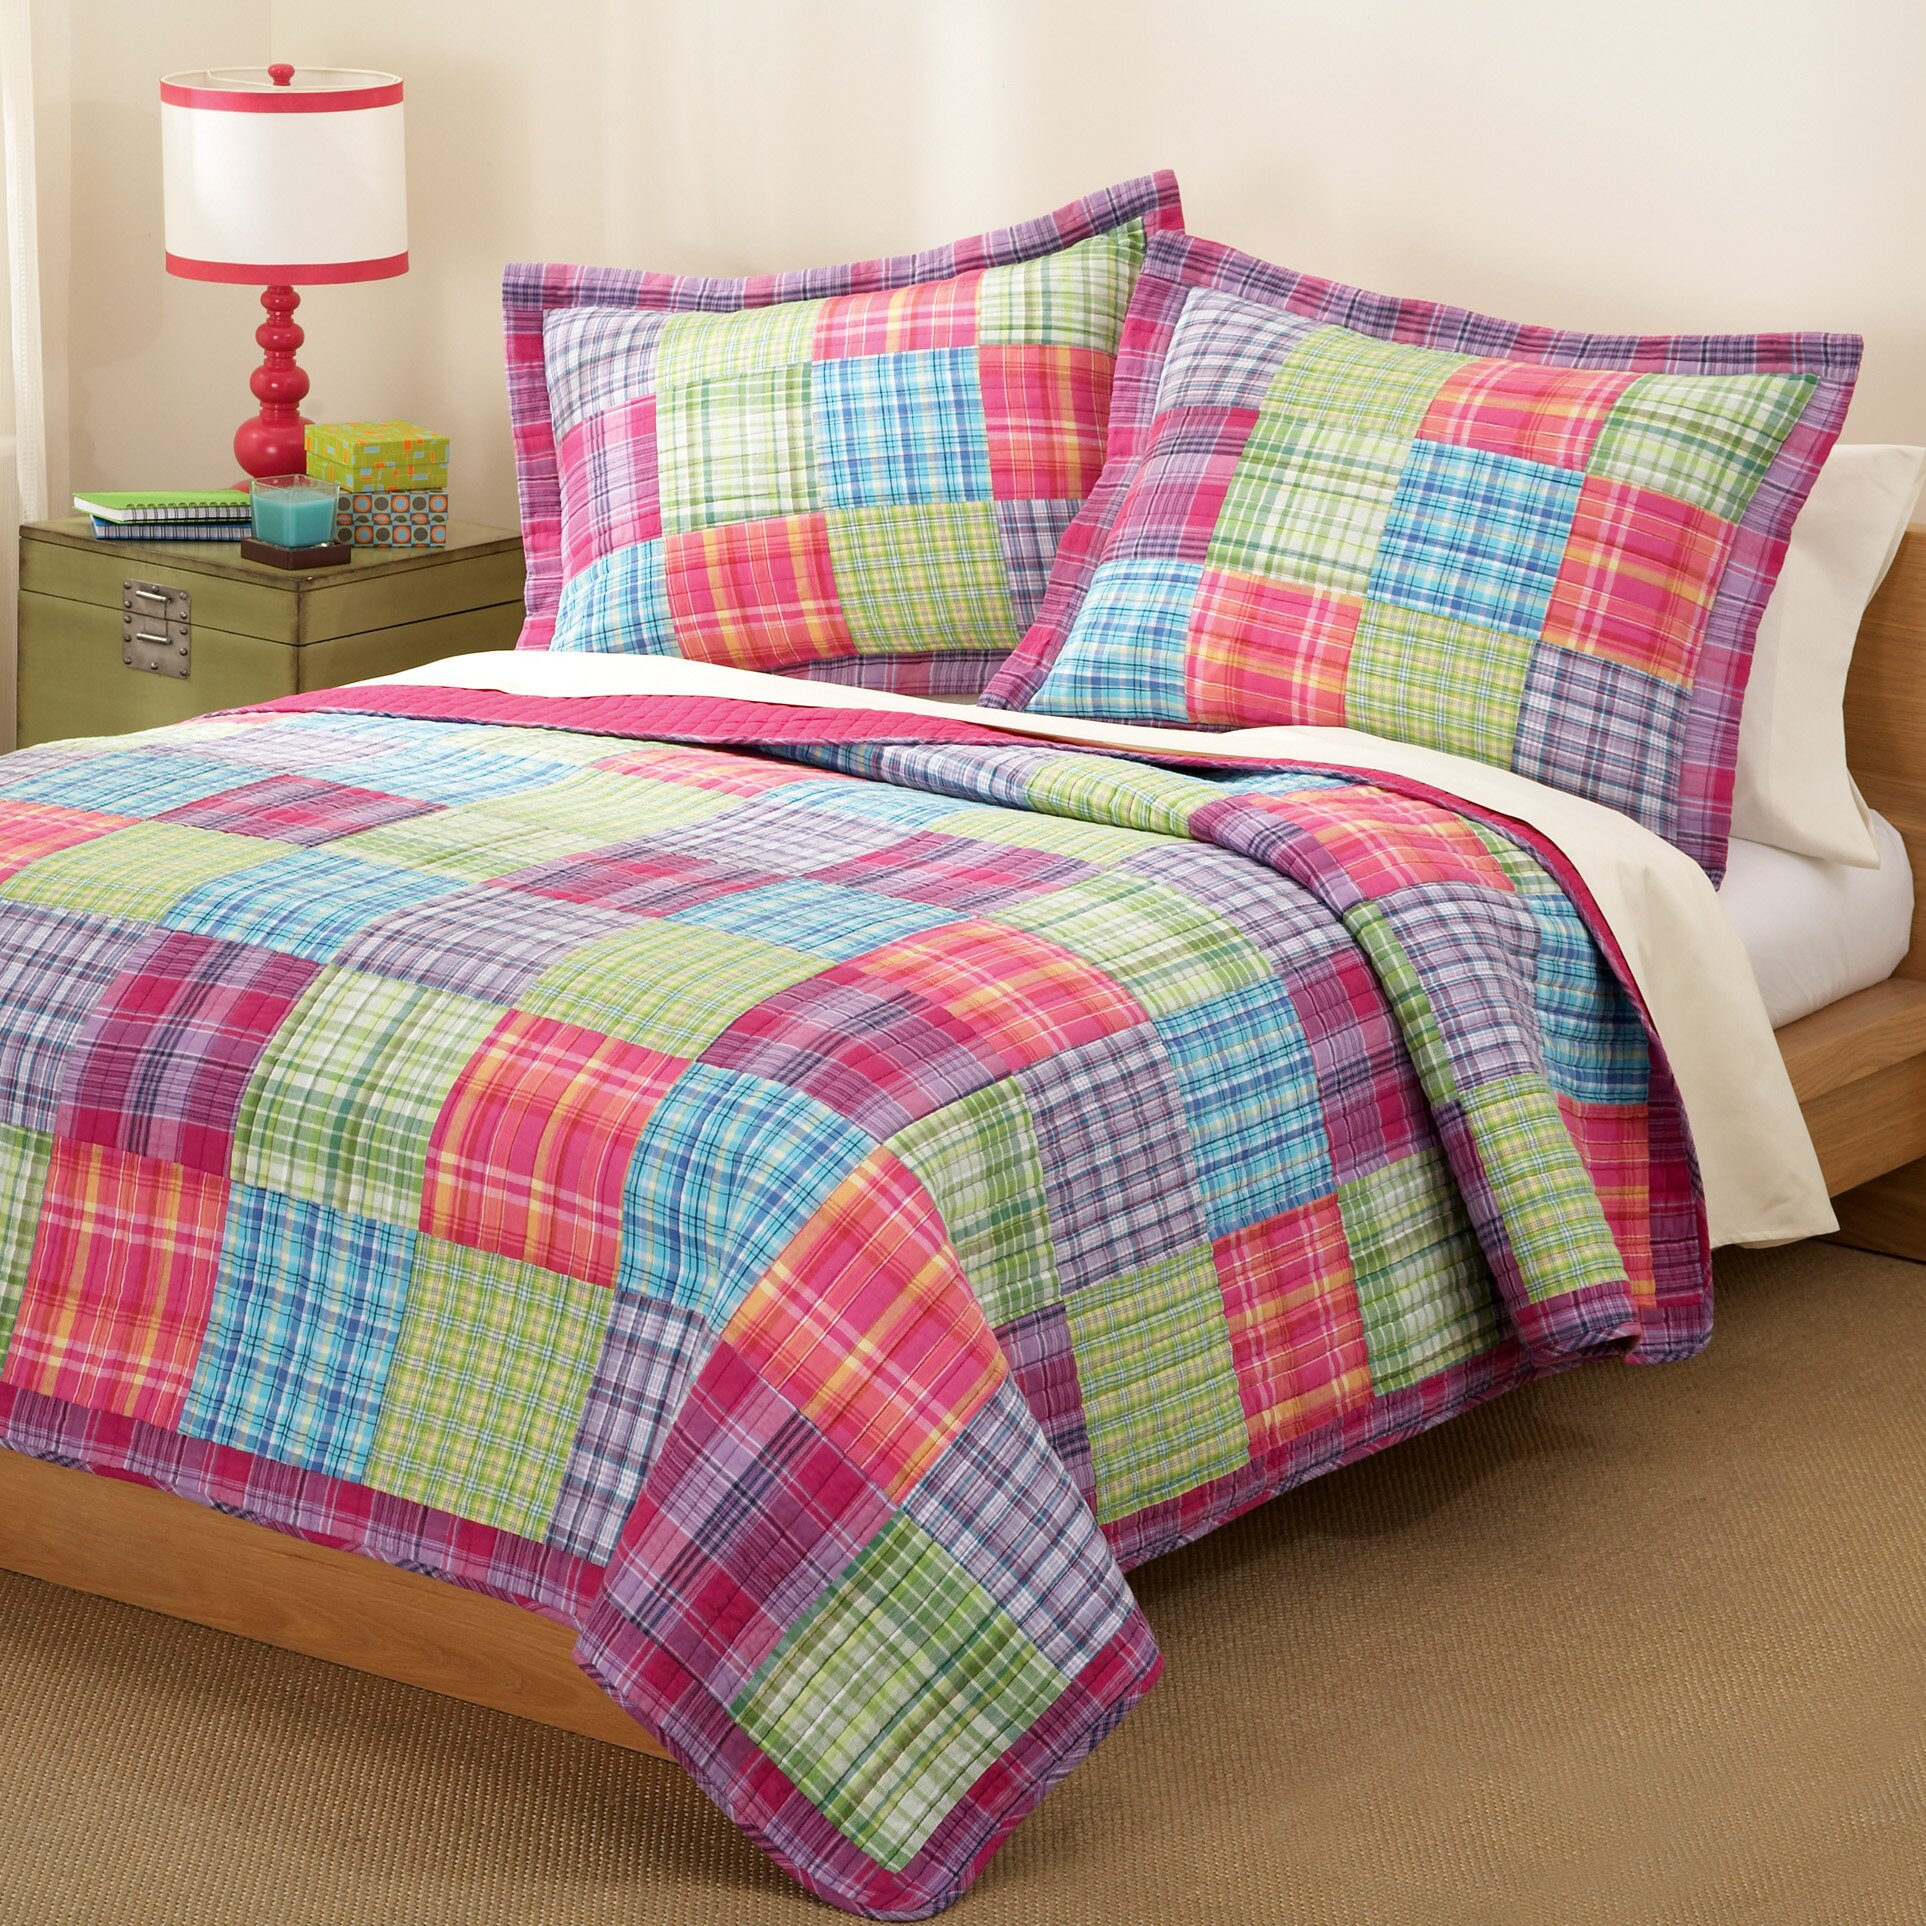 Bed sheet set with quilt - My World Kelsey Quilt Set